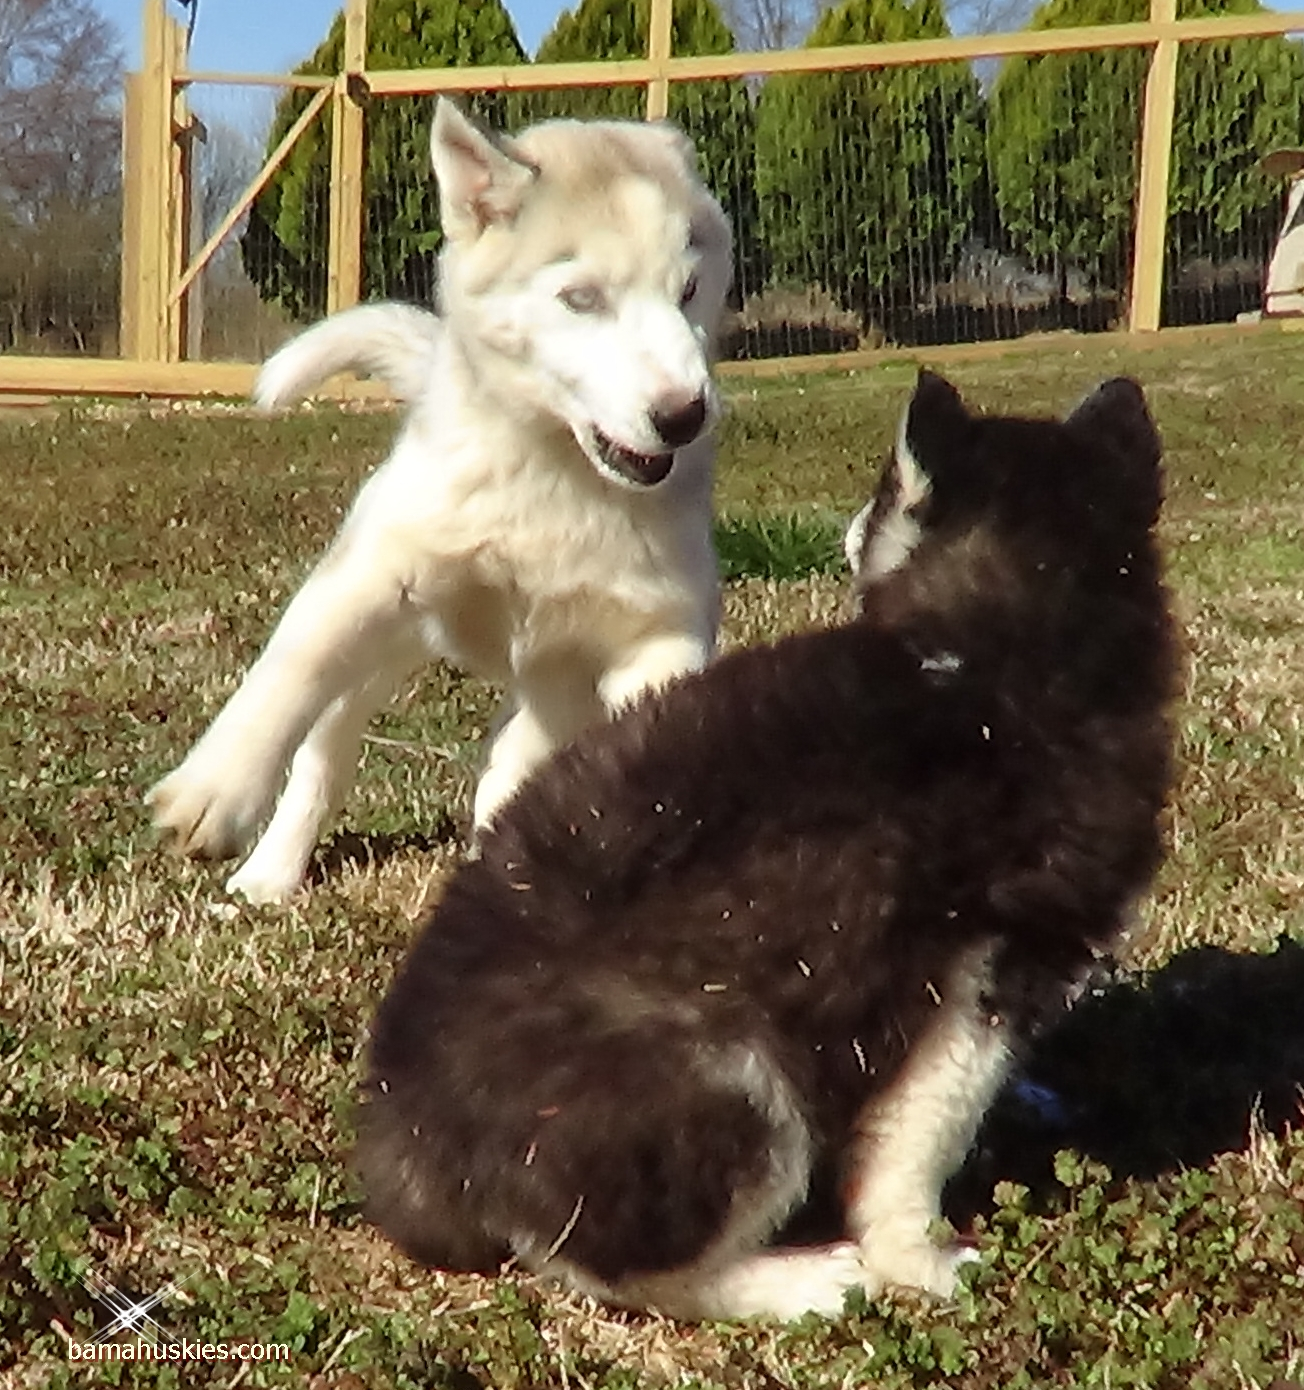 Husky Price How Much Do Husky Puppies Cost Siberian Husky Puppies For Sale